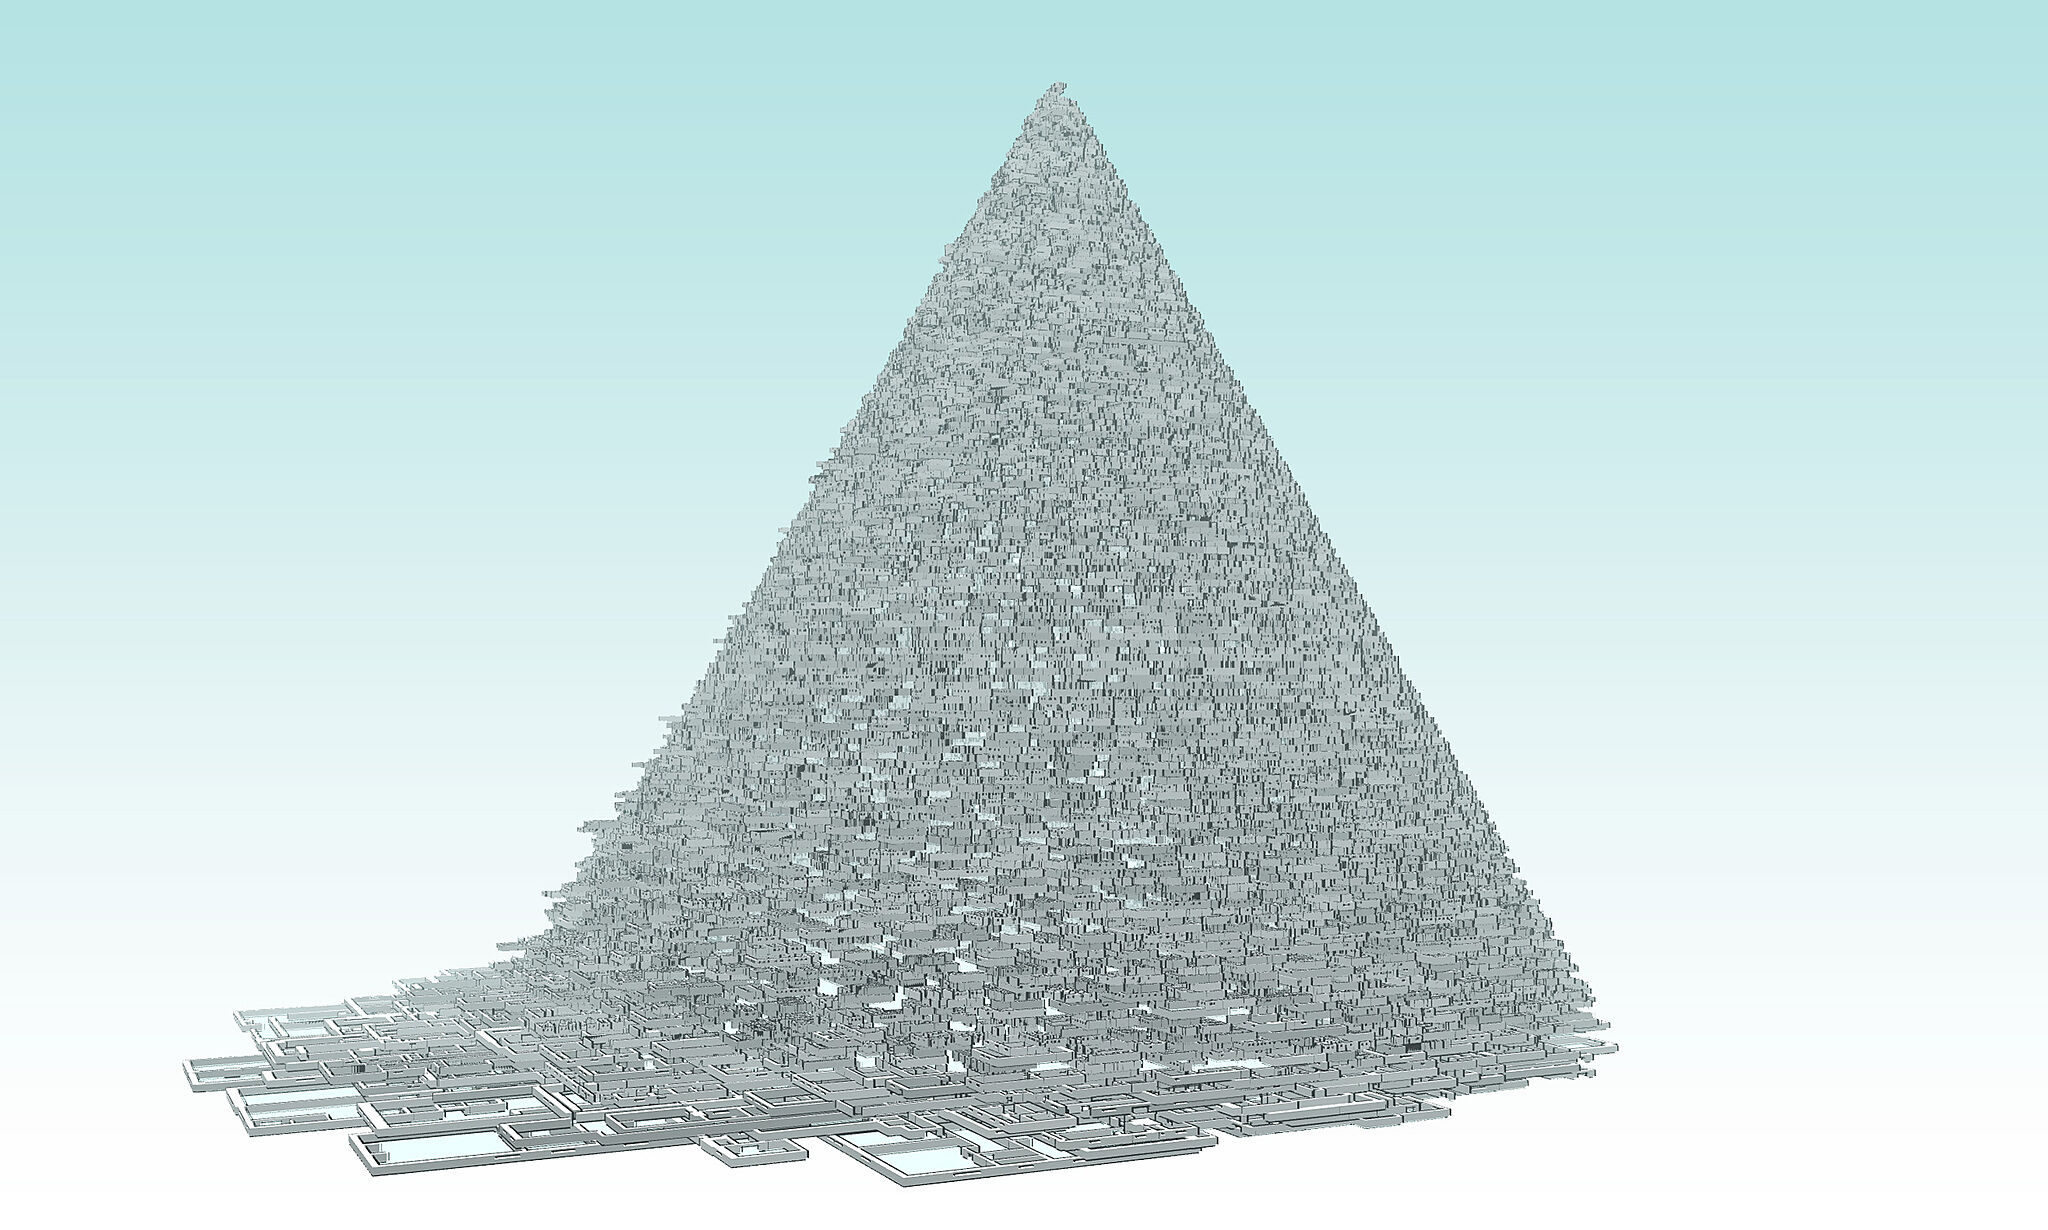 A computer-generated image of apartment layouts stacked into the shape of a pyramid